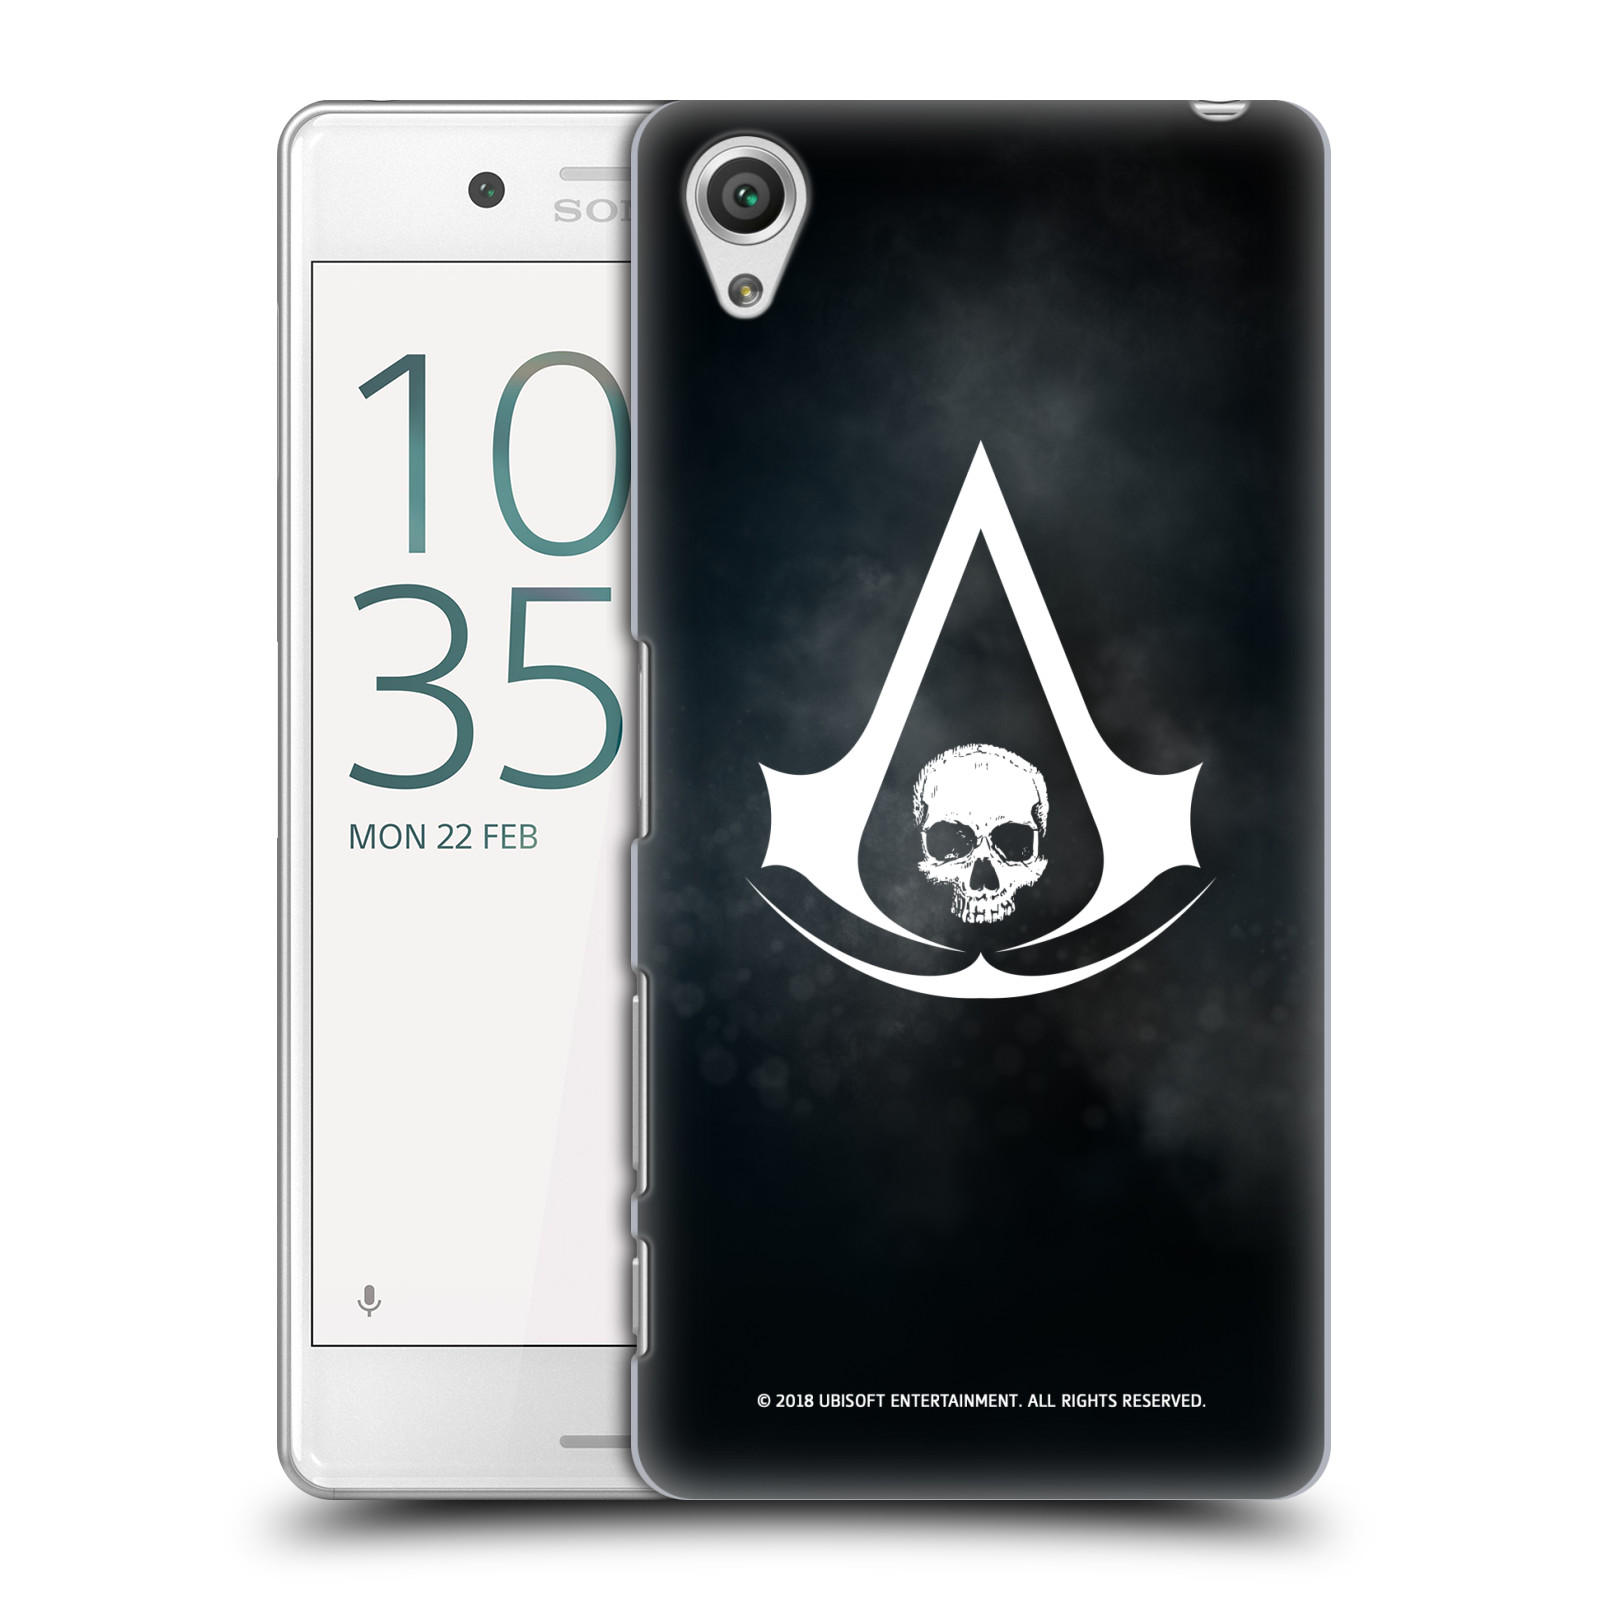 Pouzdro na mobil Sony Xperia X PERFORMANCE - HEAD CASE - Assasins Creed Black Flag - Velký znak